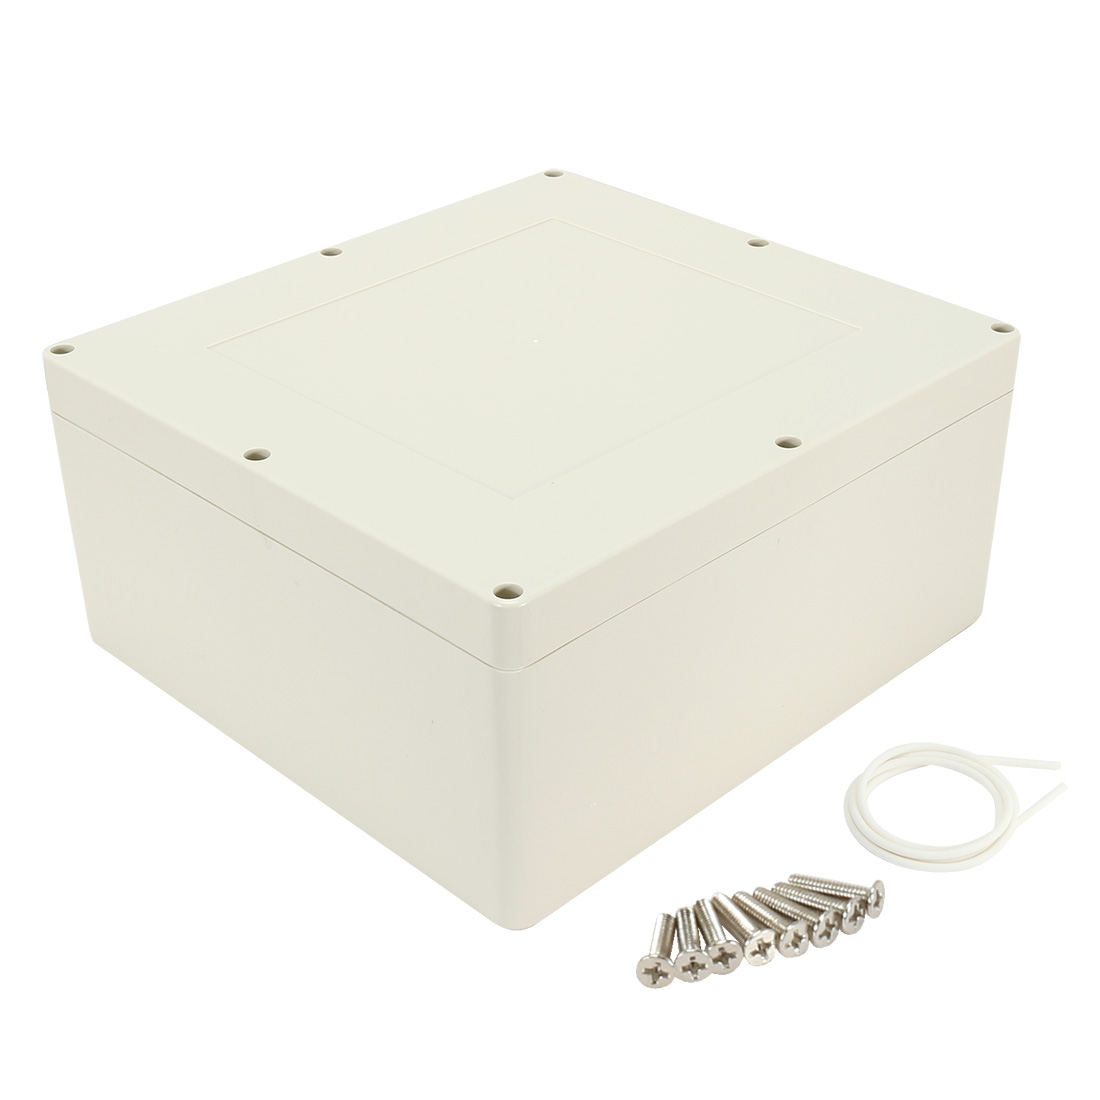 "12""x11""x5.5""(300mmx280mmx140mm) ABS Junction Box Universal Electric Project Enclosure"